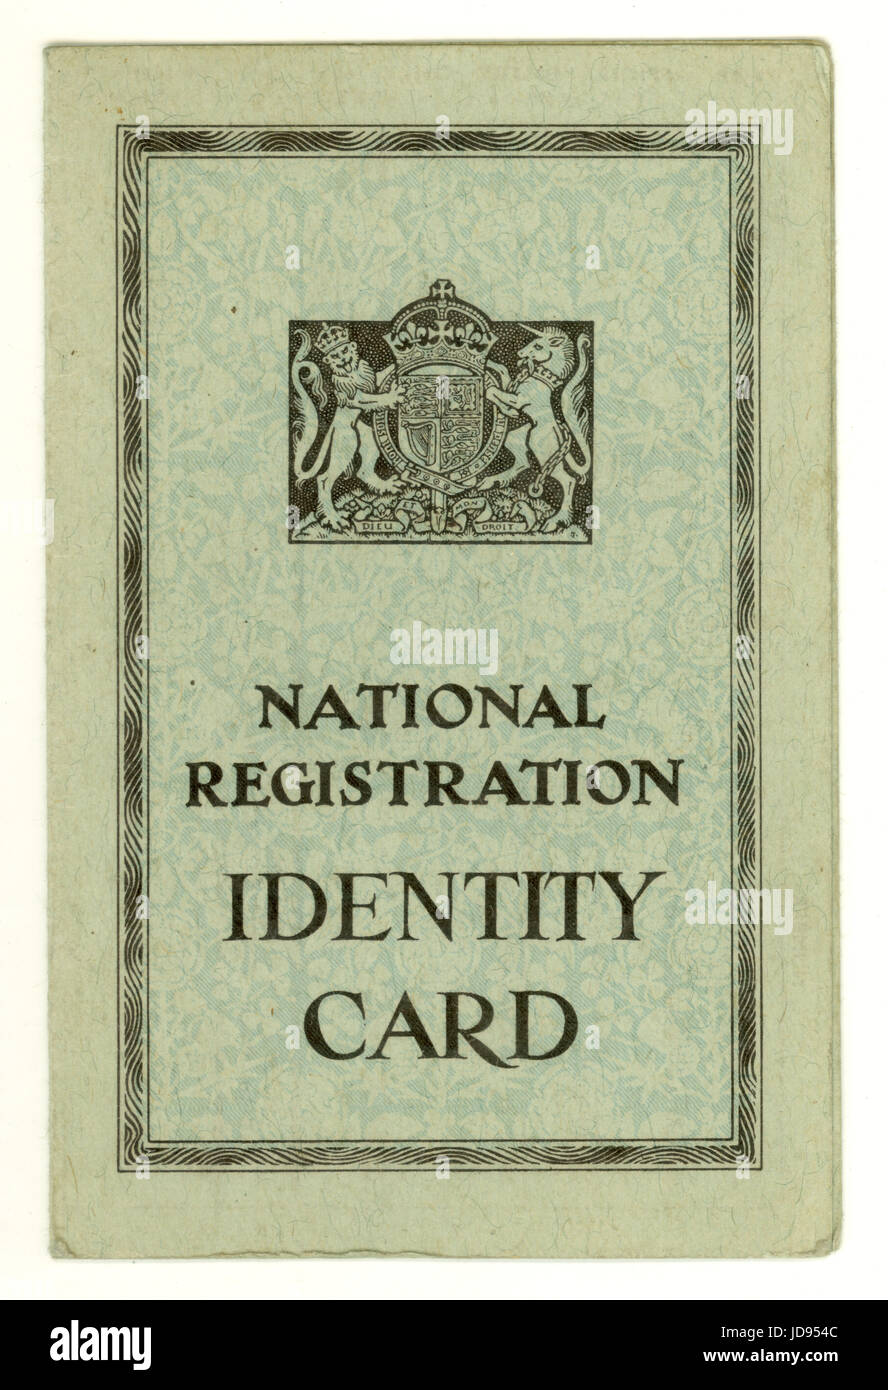 British National Registration Identity Card from World War 2 (WW11) dated 1943, issued for adults, UK - Stock Image